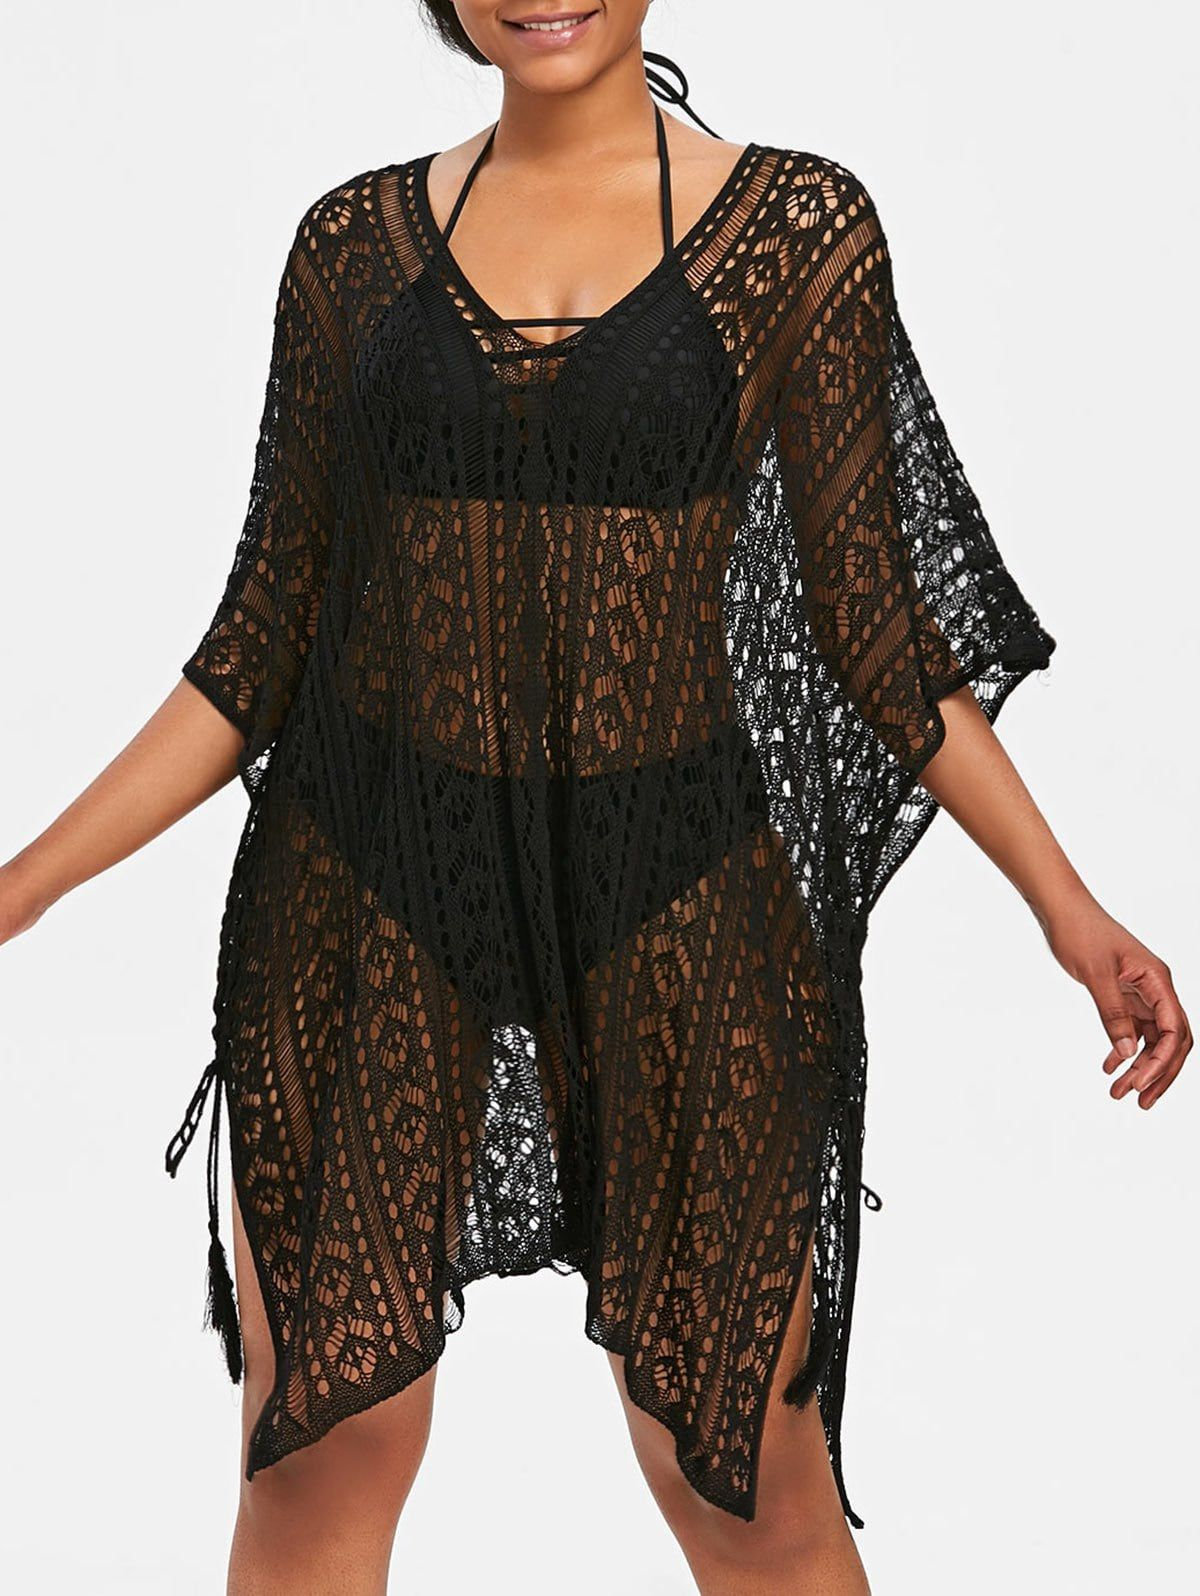 5a72acf8f2 Asymmetric Knit Beach Cover Up #CHEAP#BEST#FASHION#FOR EVERYONE#SALE#FREE  SHIPPING# RGBF1 Get 25% OFF Discount! Use Code:RGBF1 Get Extra 25% OFF